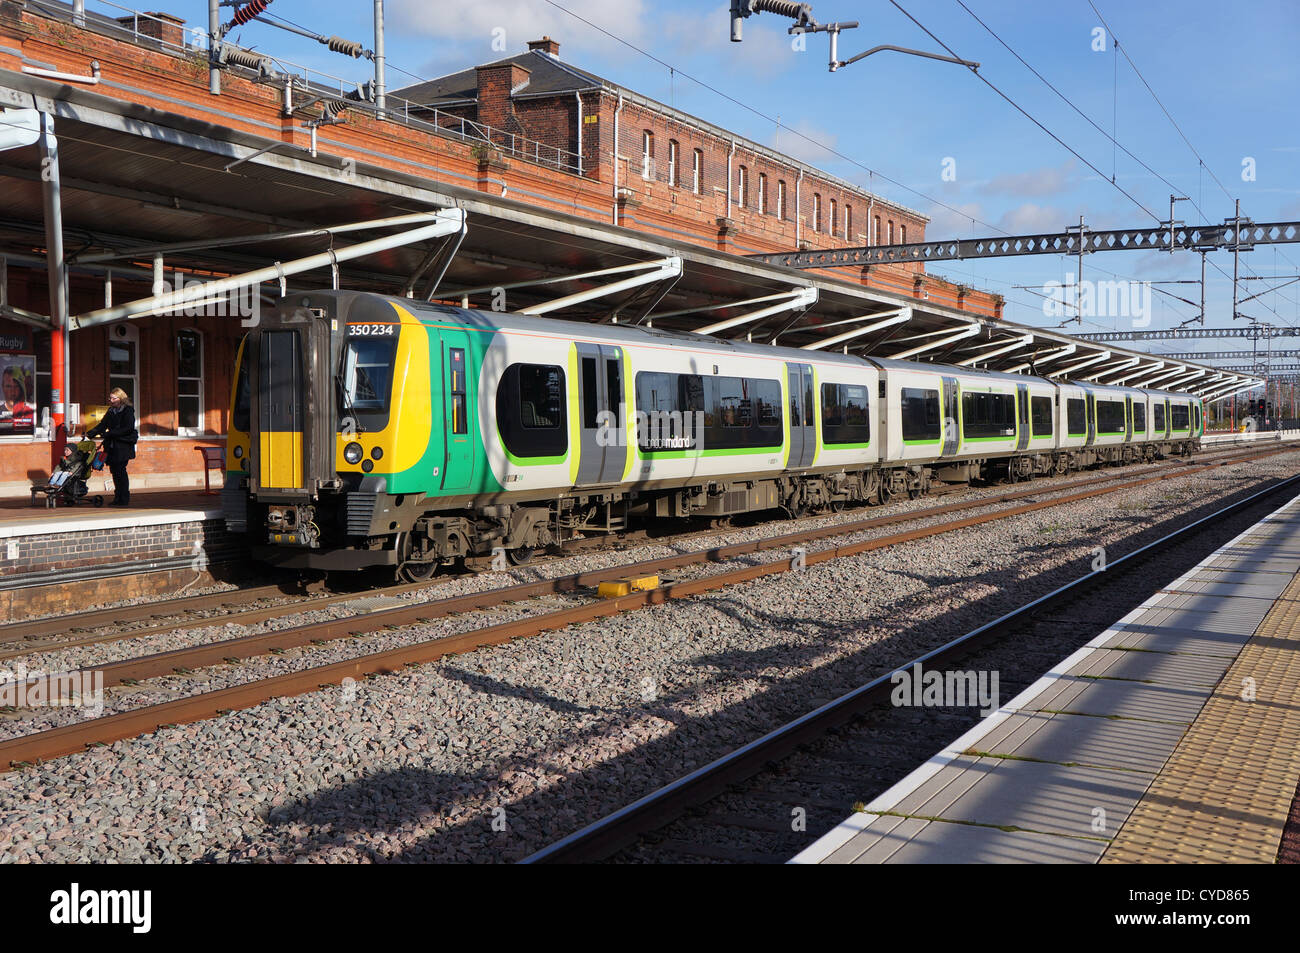 london midland train at Rugby station oct 2012 - Stock Image